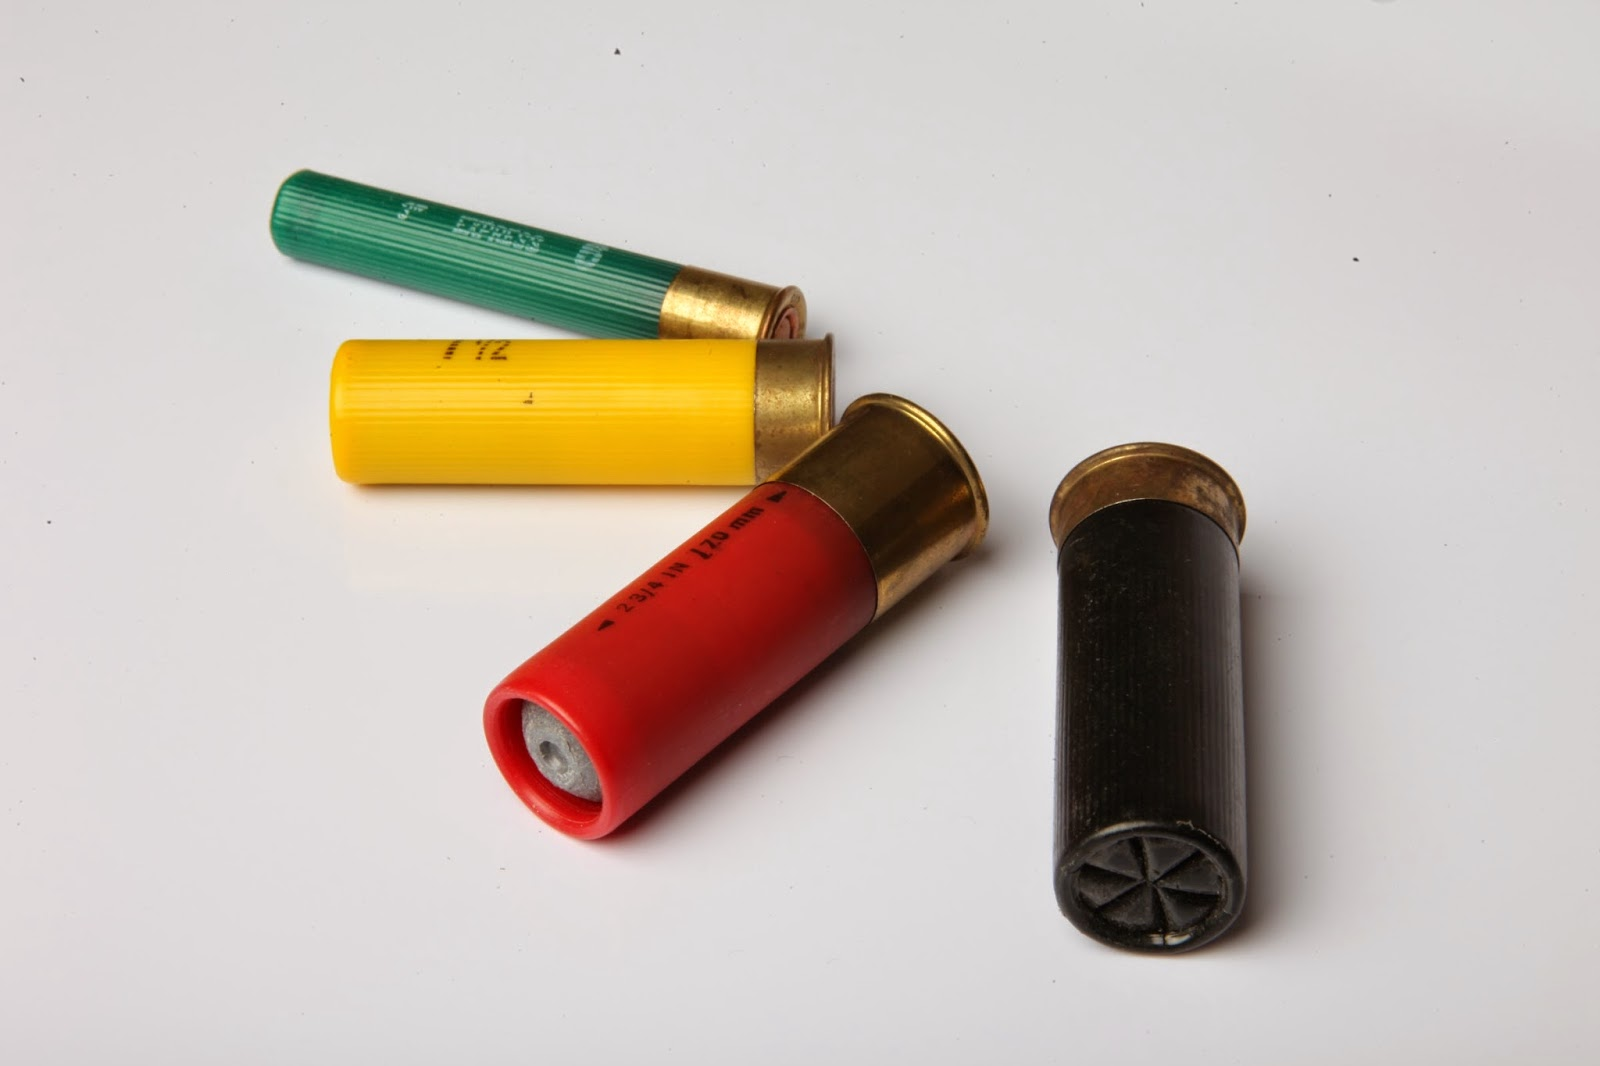 shotgun shell background - photo #33